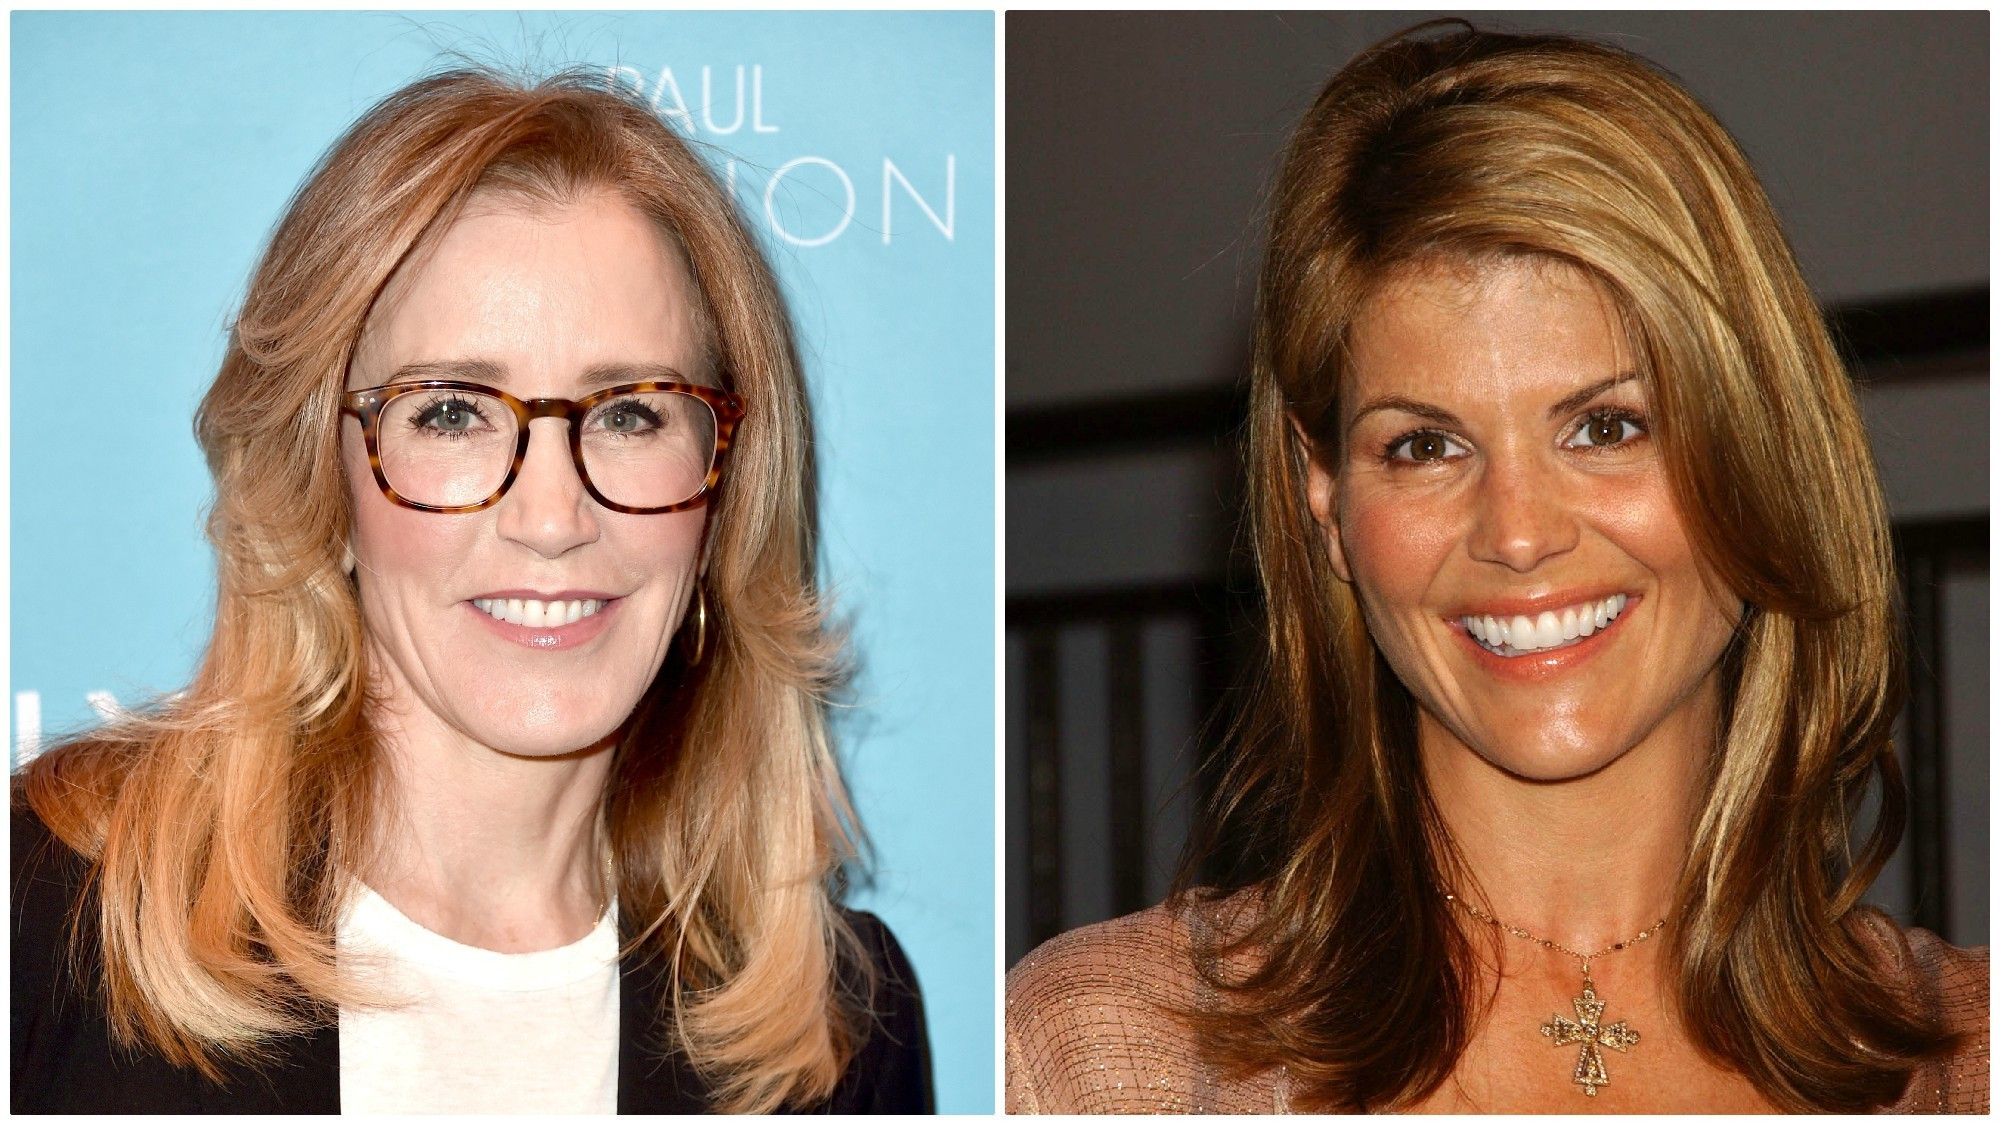 Felicity Huffman and Lori Loughlin's projects under scrutiny amid college exam scandal